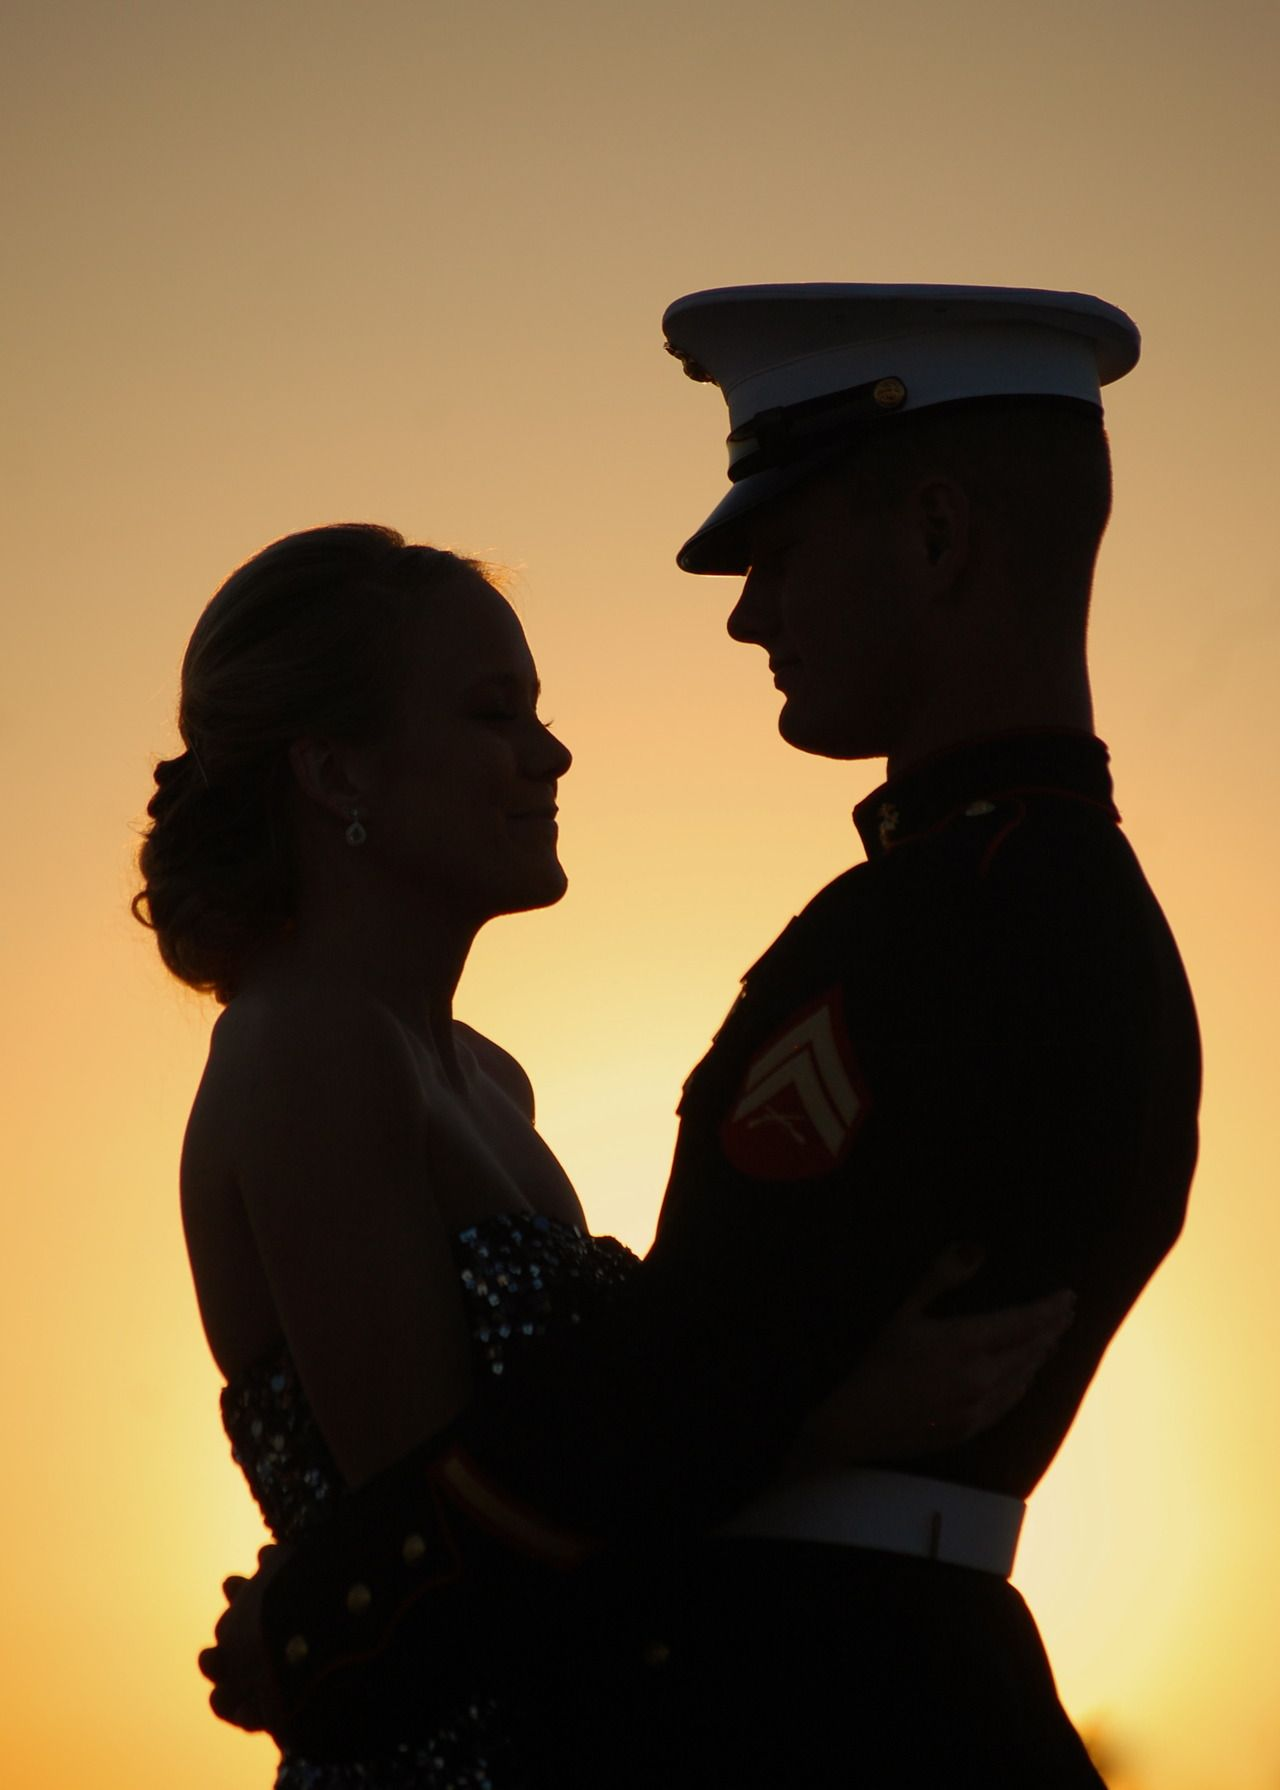 How To Handle Tension If You Are An Army Spouse